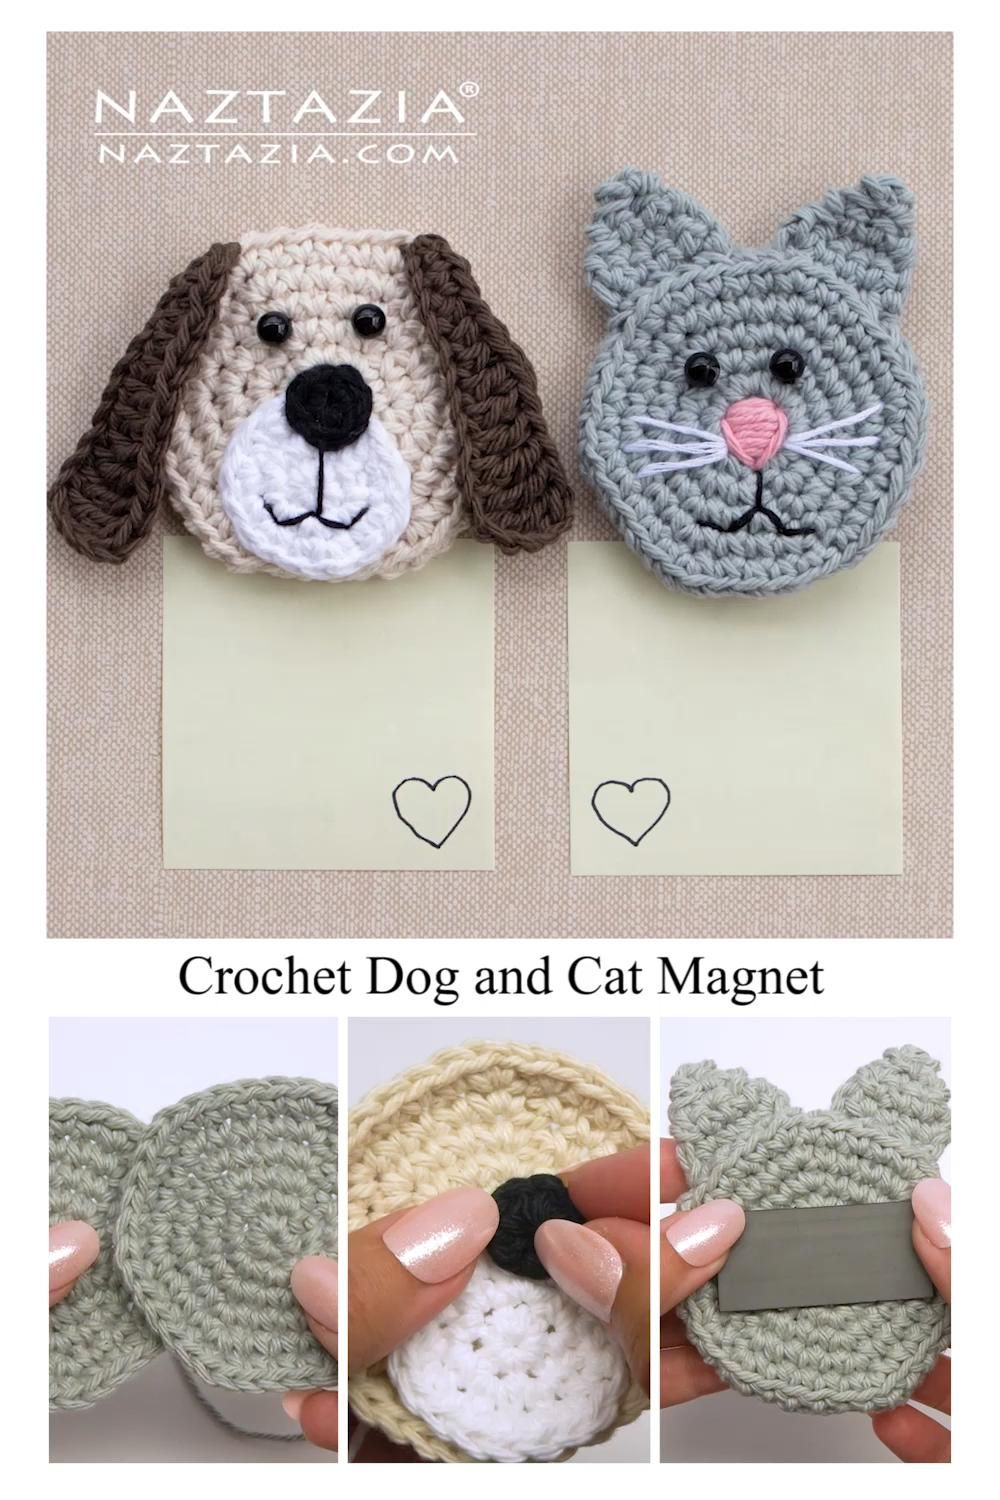 Crochet Dog and Cat Magnet Refrigerator Set by Donna Wolfe from Naztazia